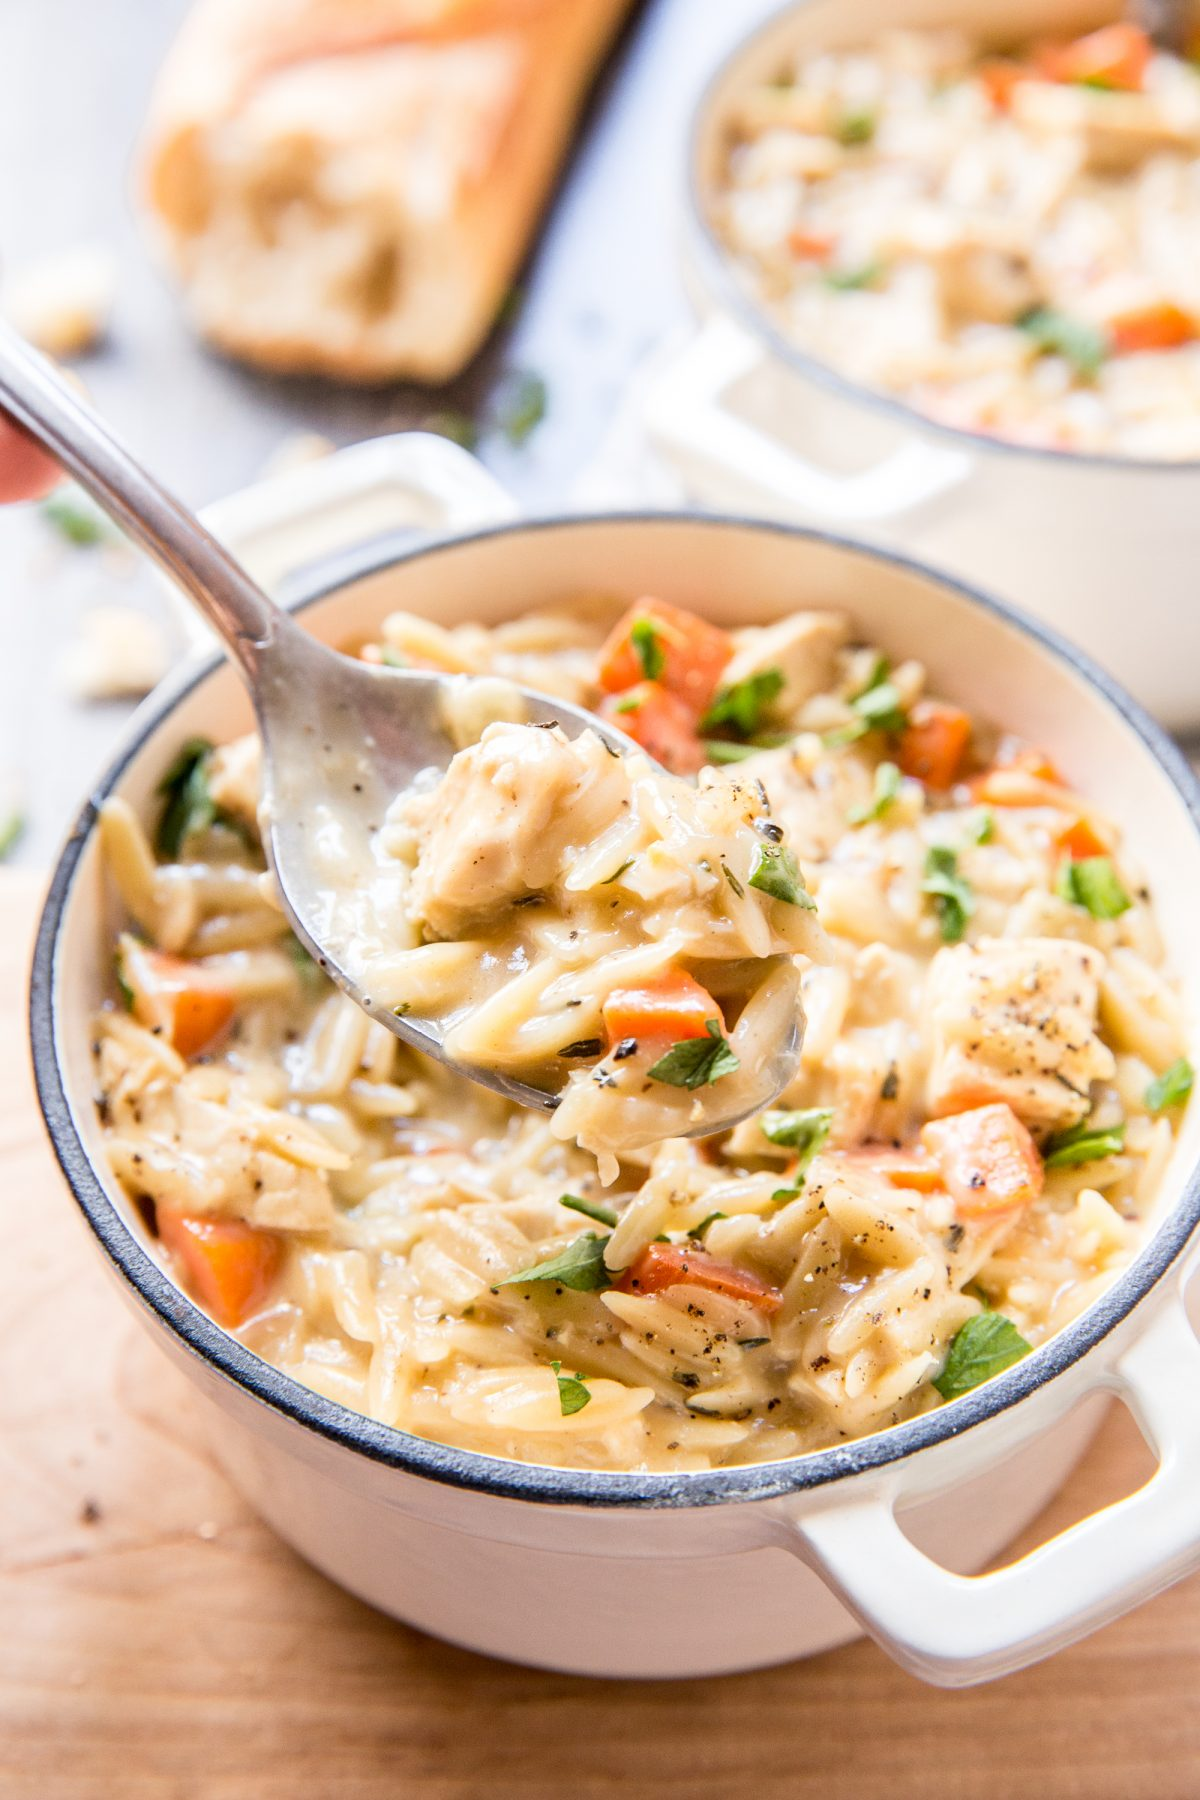 A spoonful of orzo, chicken, and carrots in a white and blue soup bowl